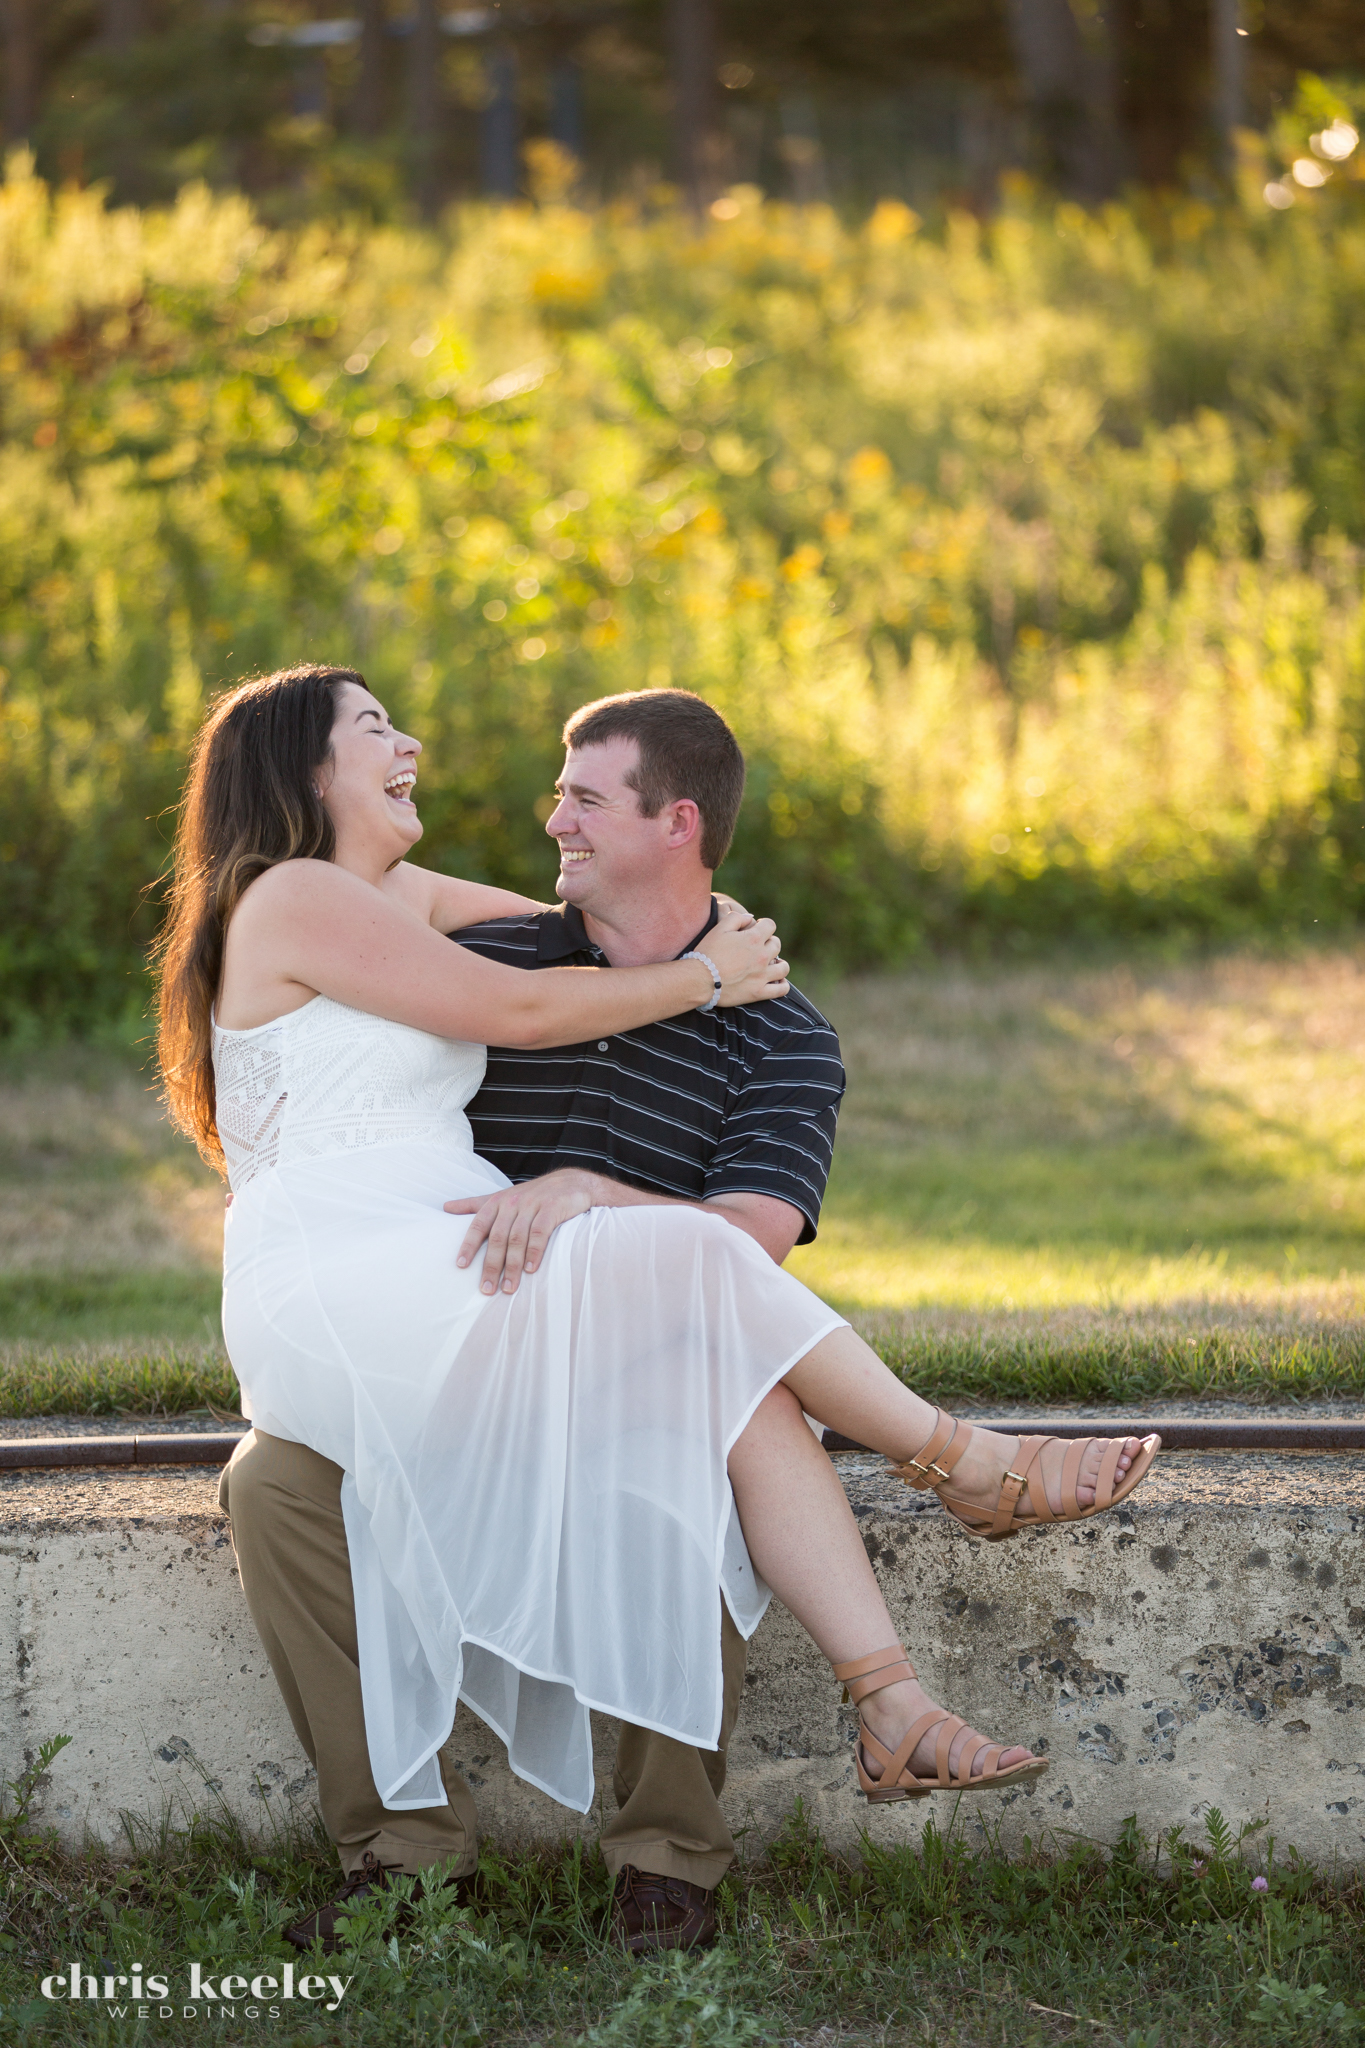 21-engagement-wedding-pictures-rye-new-hampshire-chris-keeley-weddings.jpg